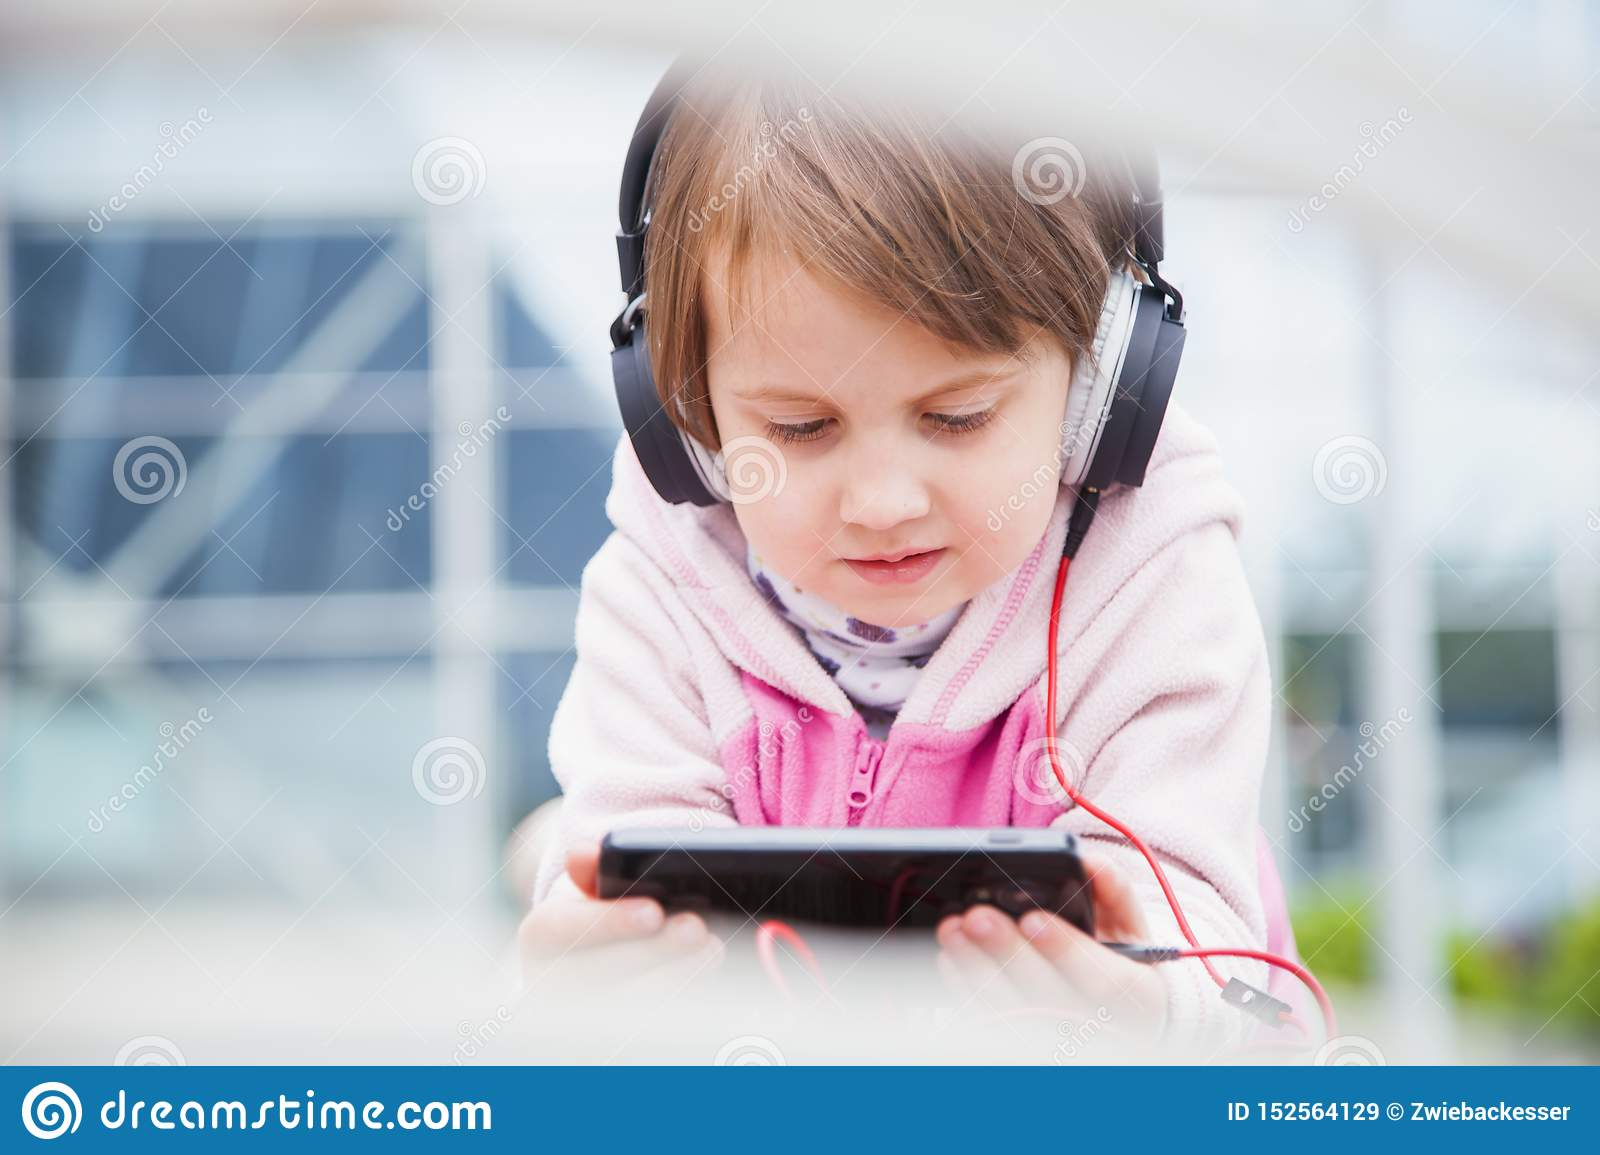 Little cute child girl wearing headphones listens online web free audio course outdoors